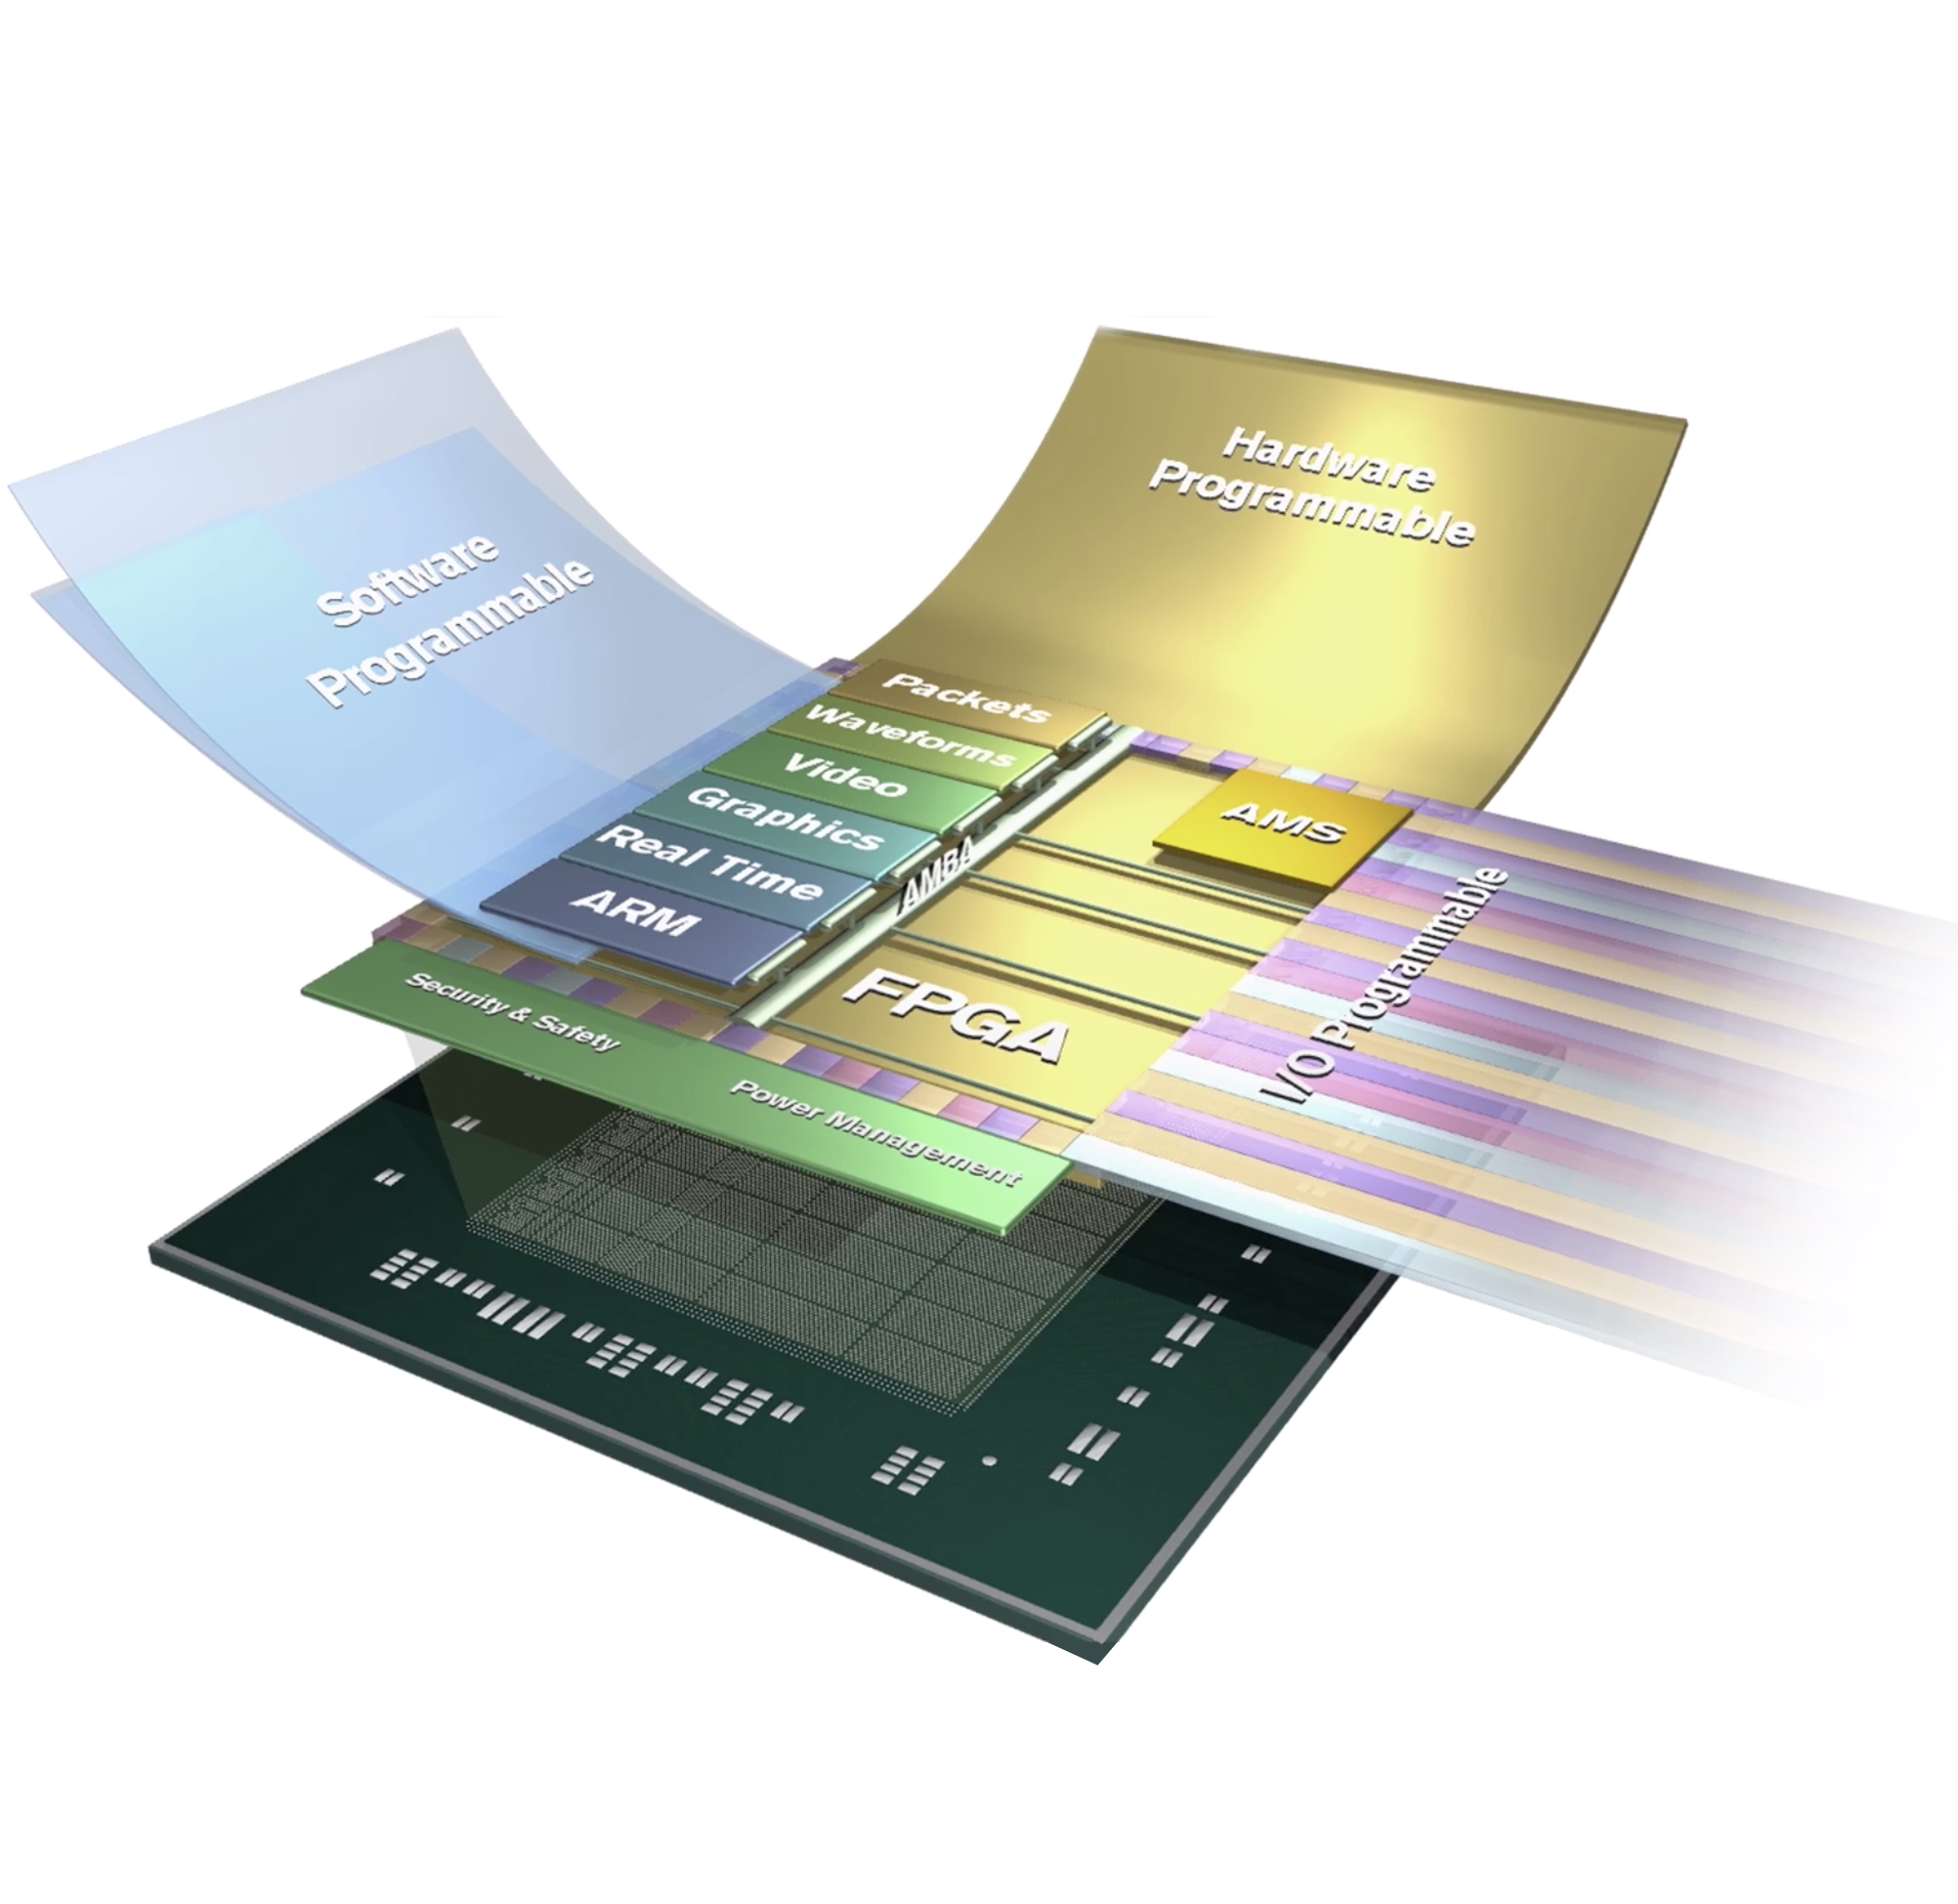 xilinx zynq ultrascale+ architecture promwad